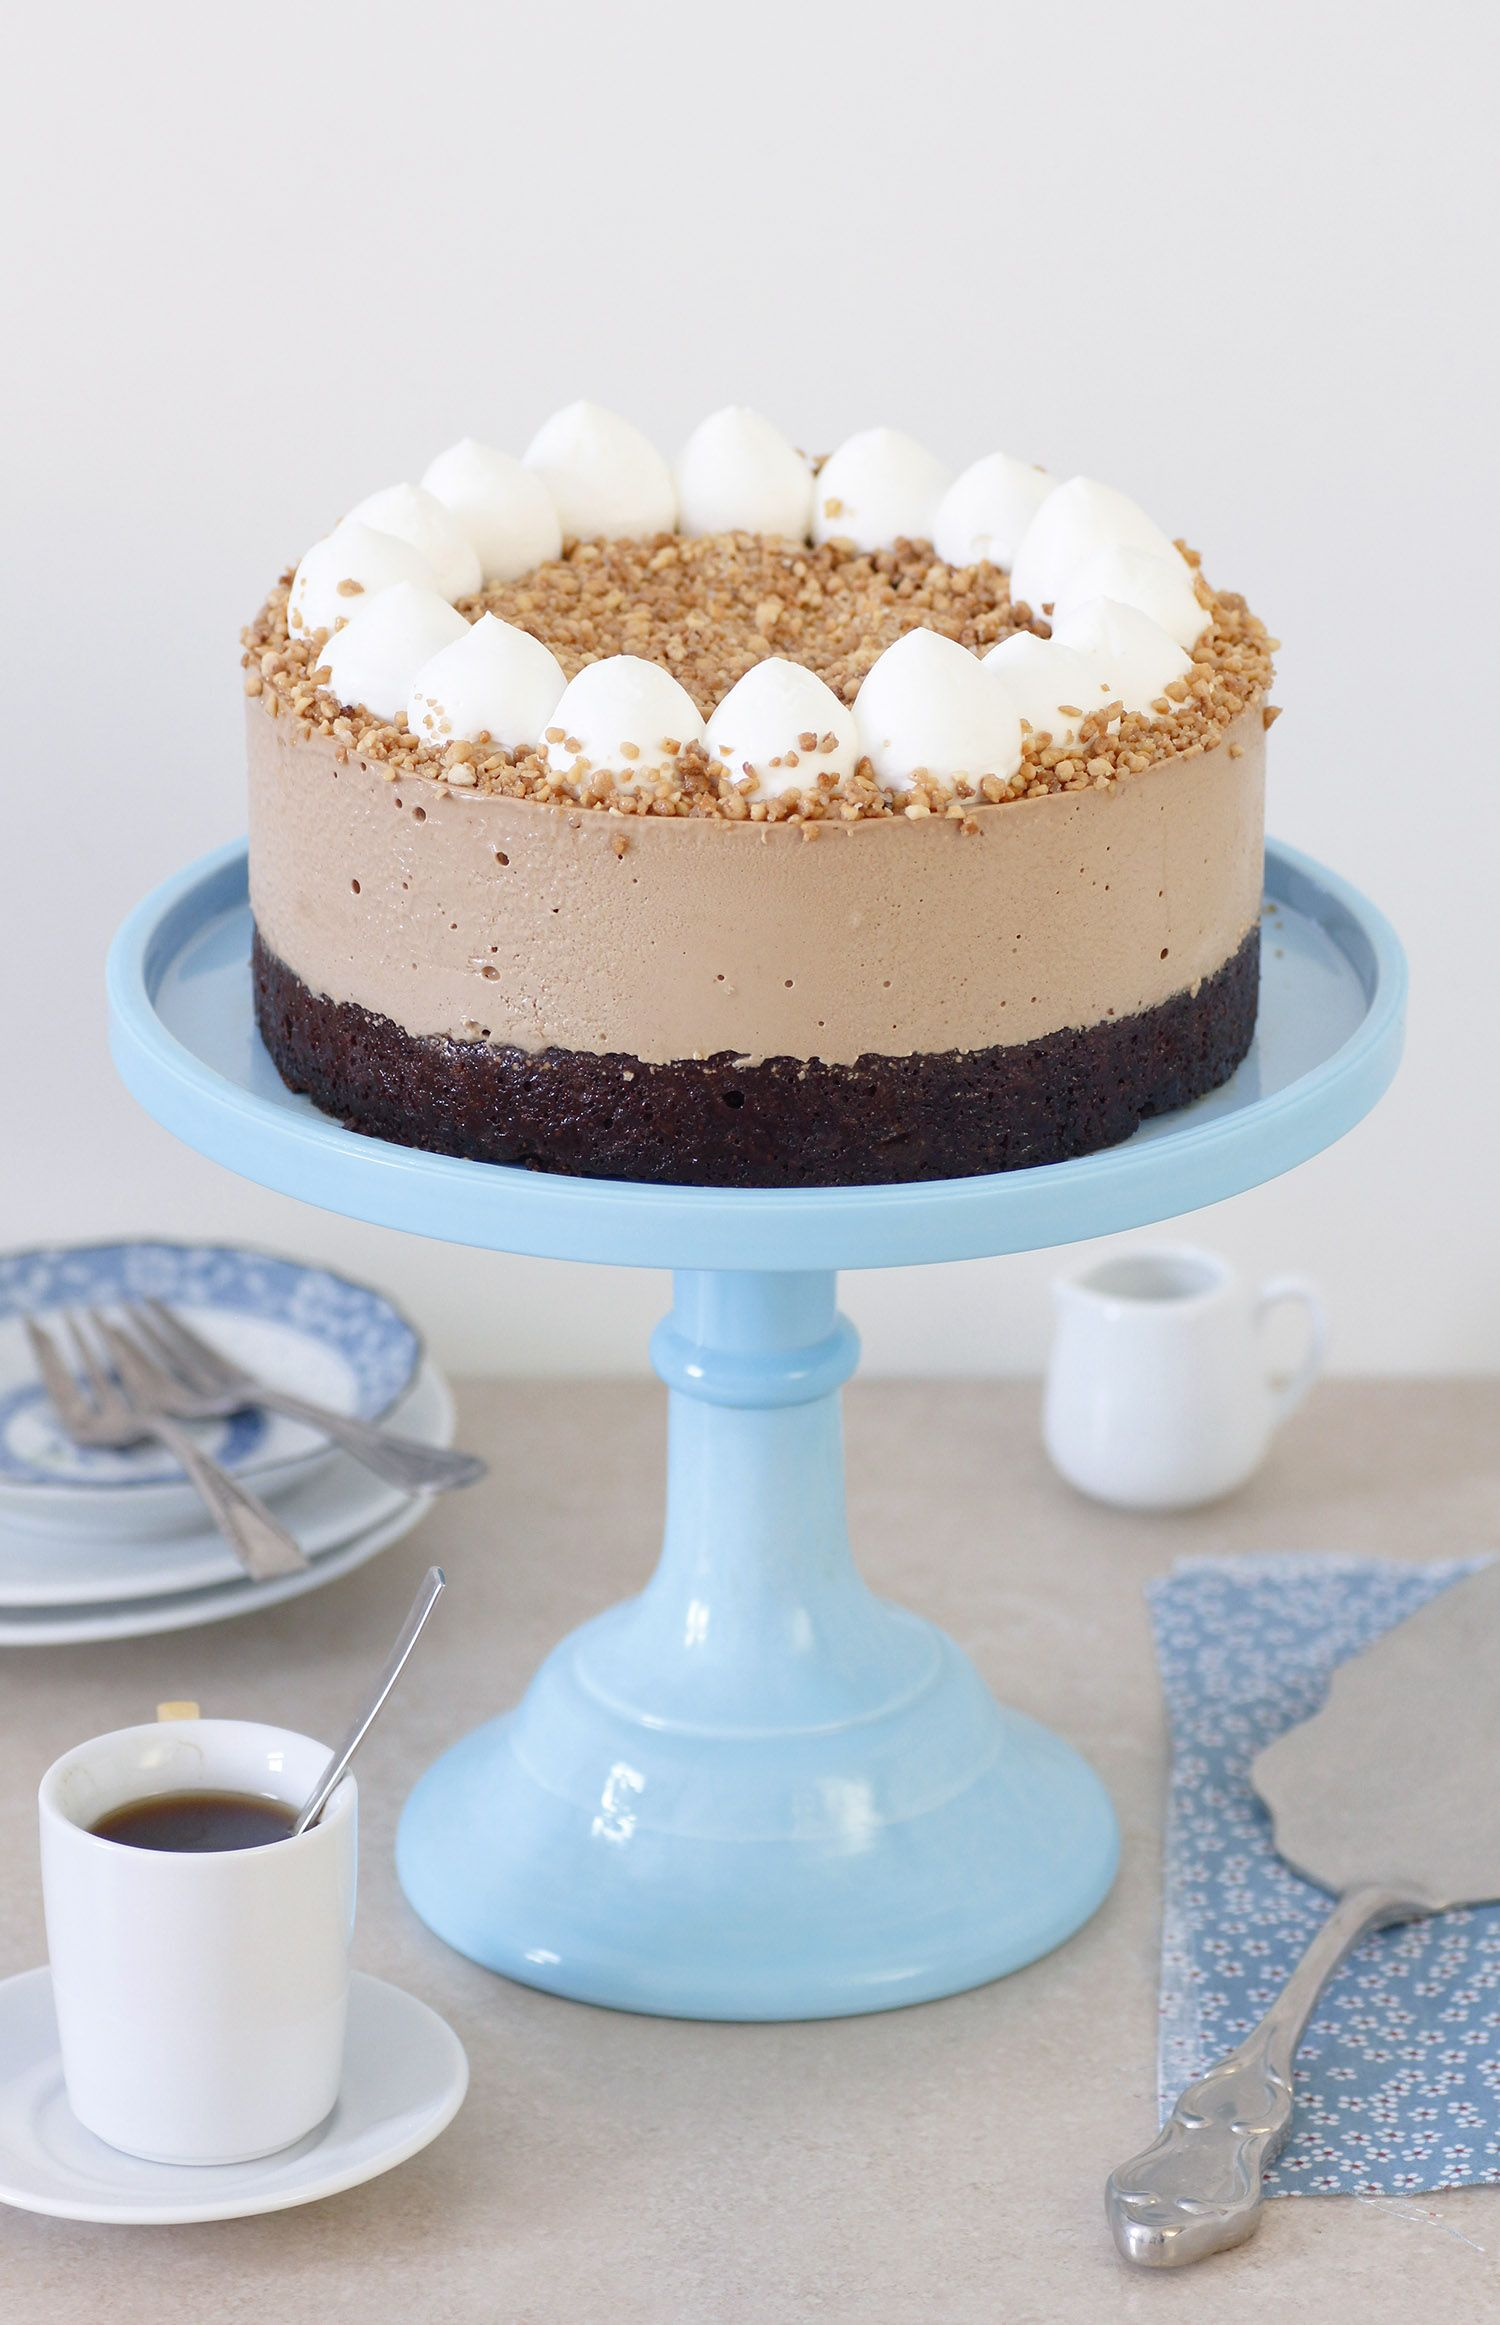 Coffee Mousse Cake with Chocolate and Hazelnuts